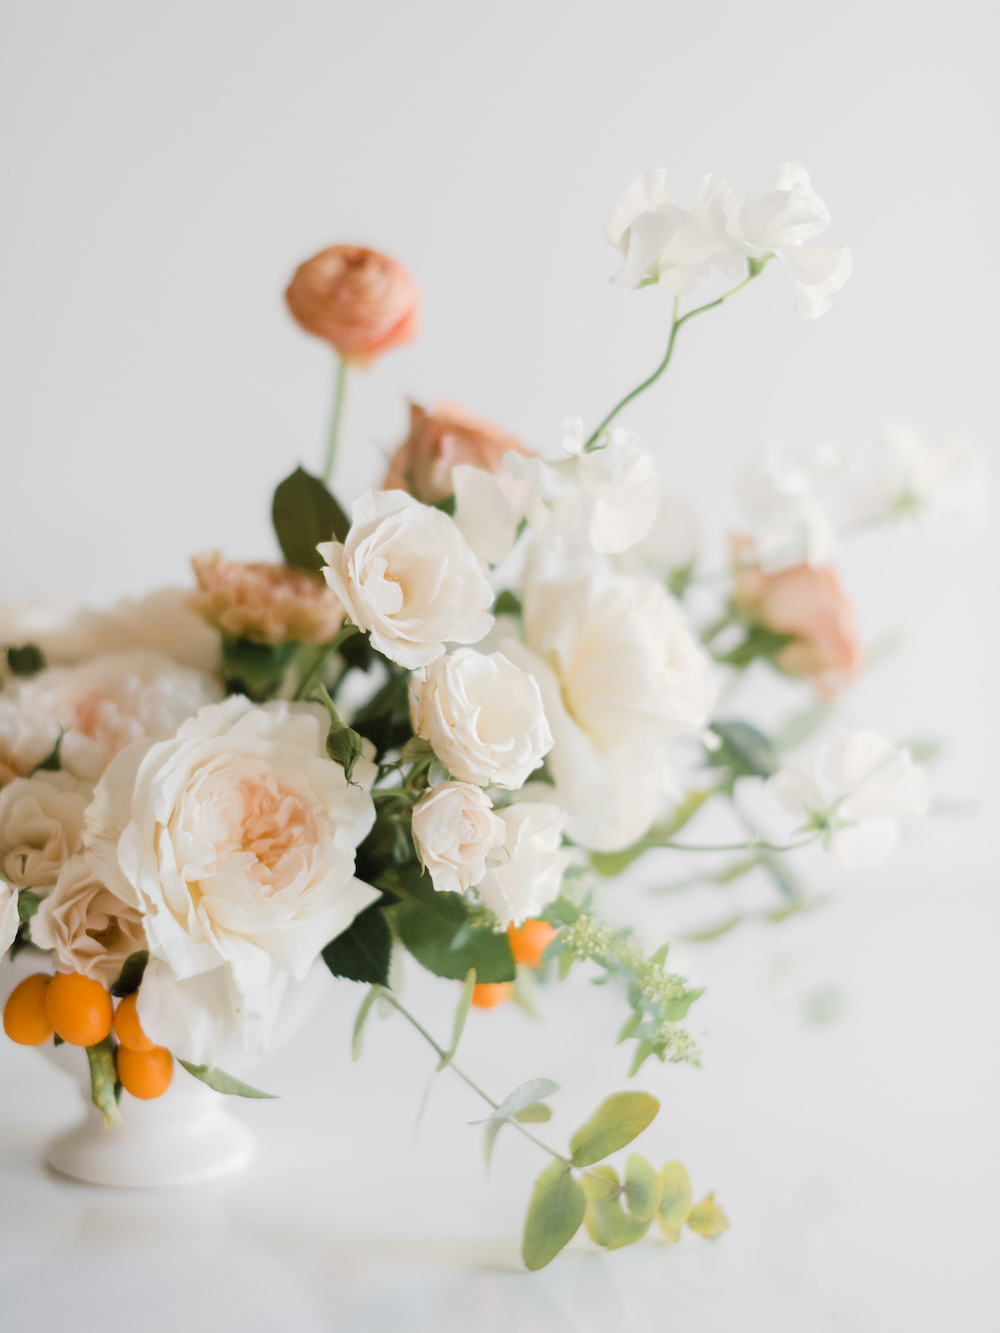 Rose compote by Luster Floral Design at Sinclair and Moore Workshop, photo by Kristen Honeycutt Photo Co.jpg